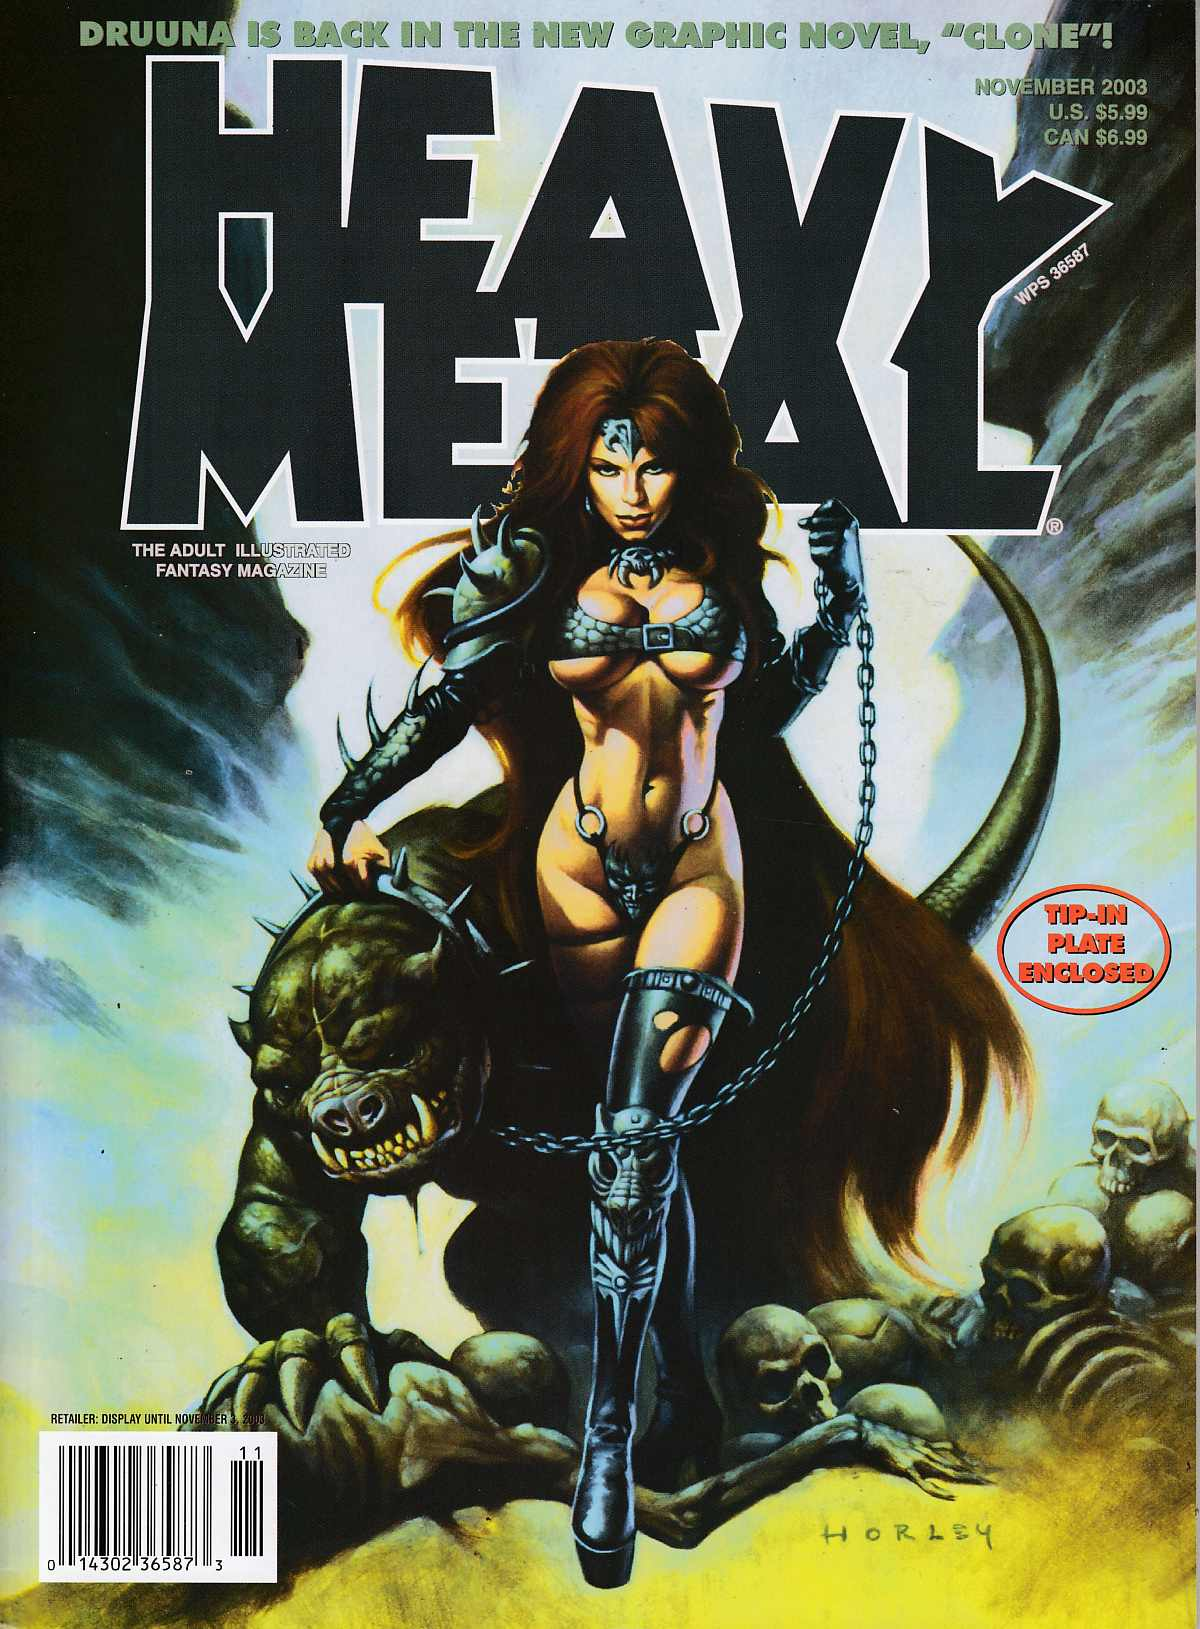 Revista Heavy Metal